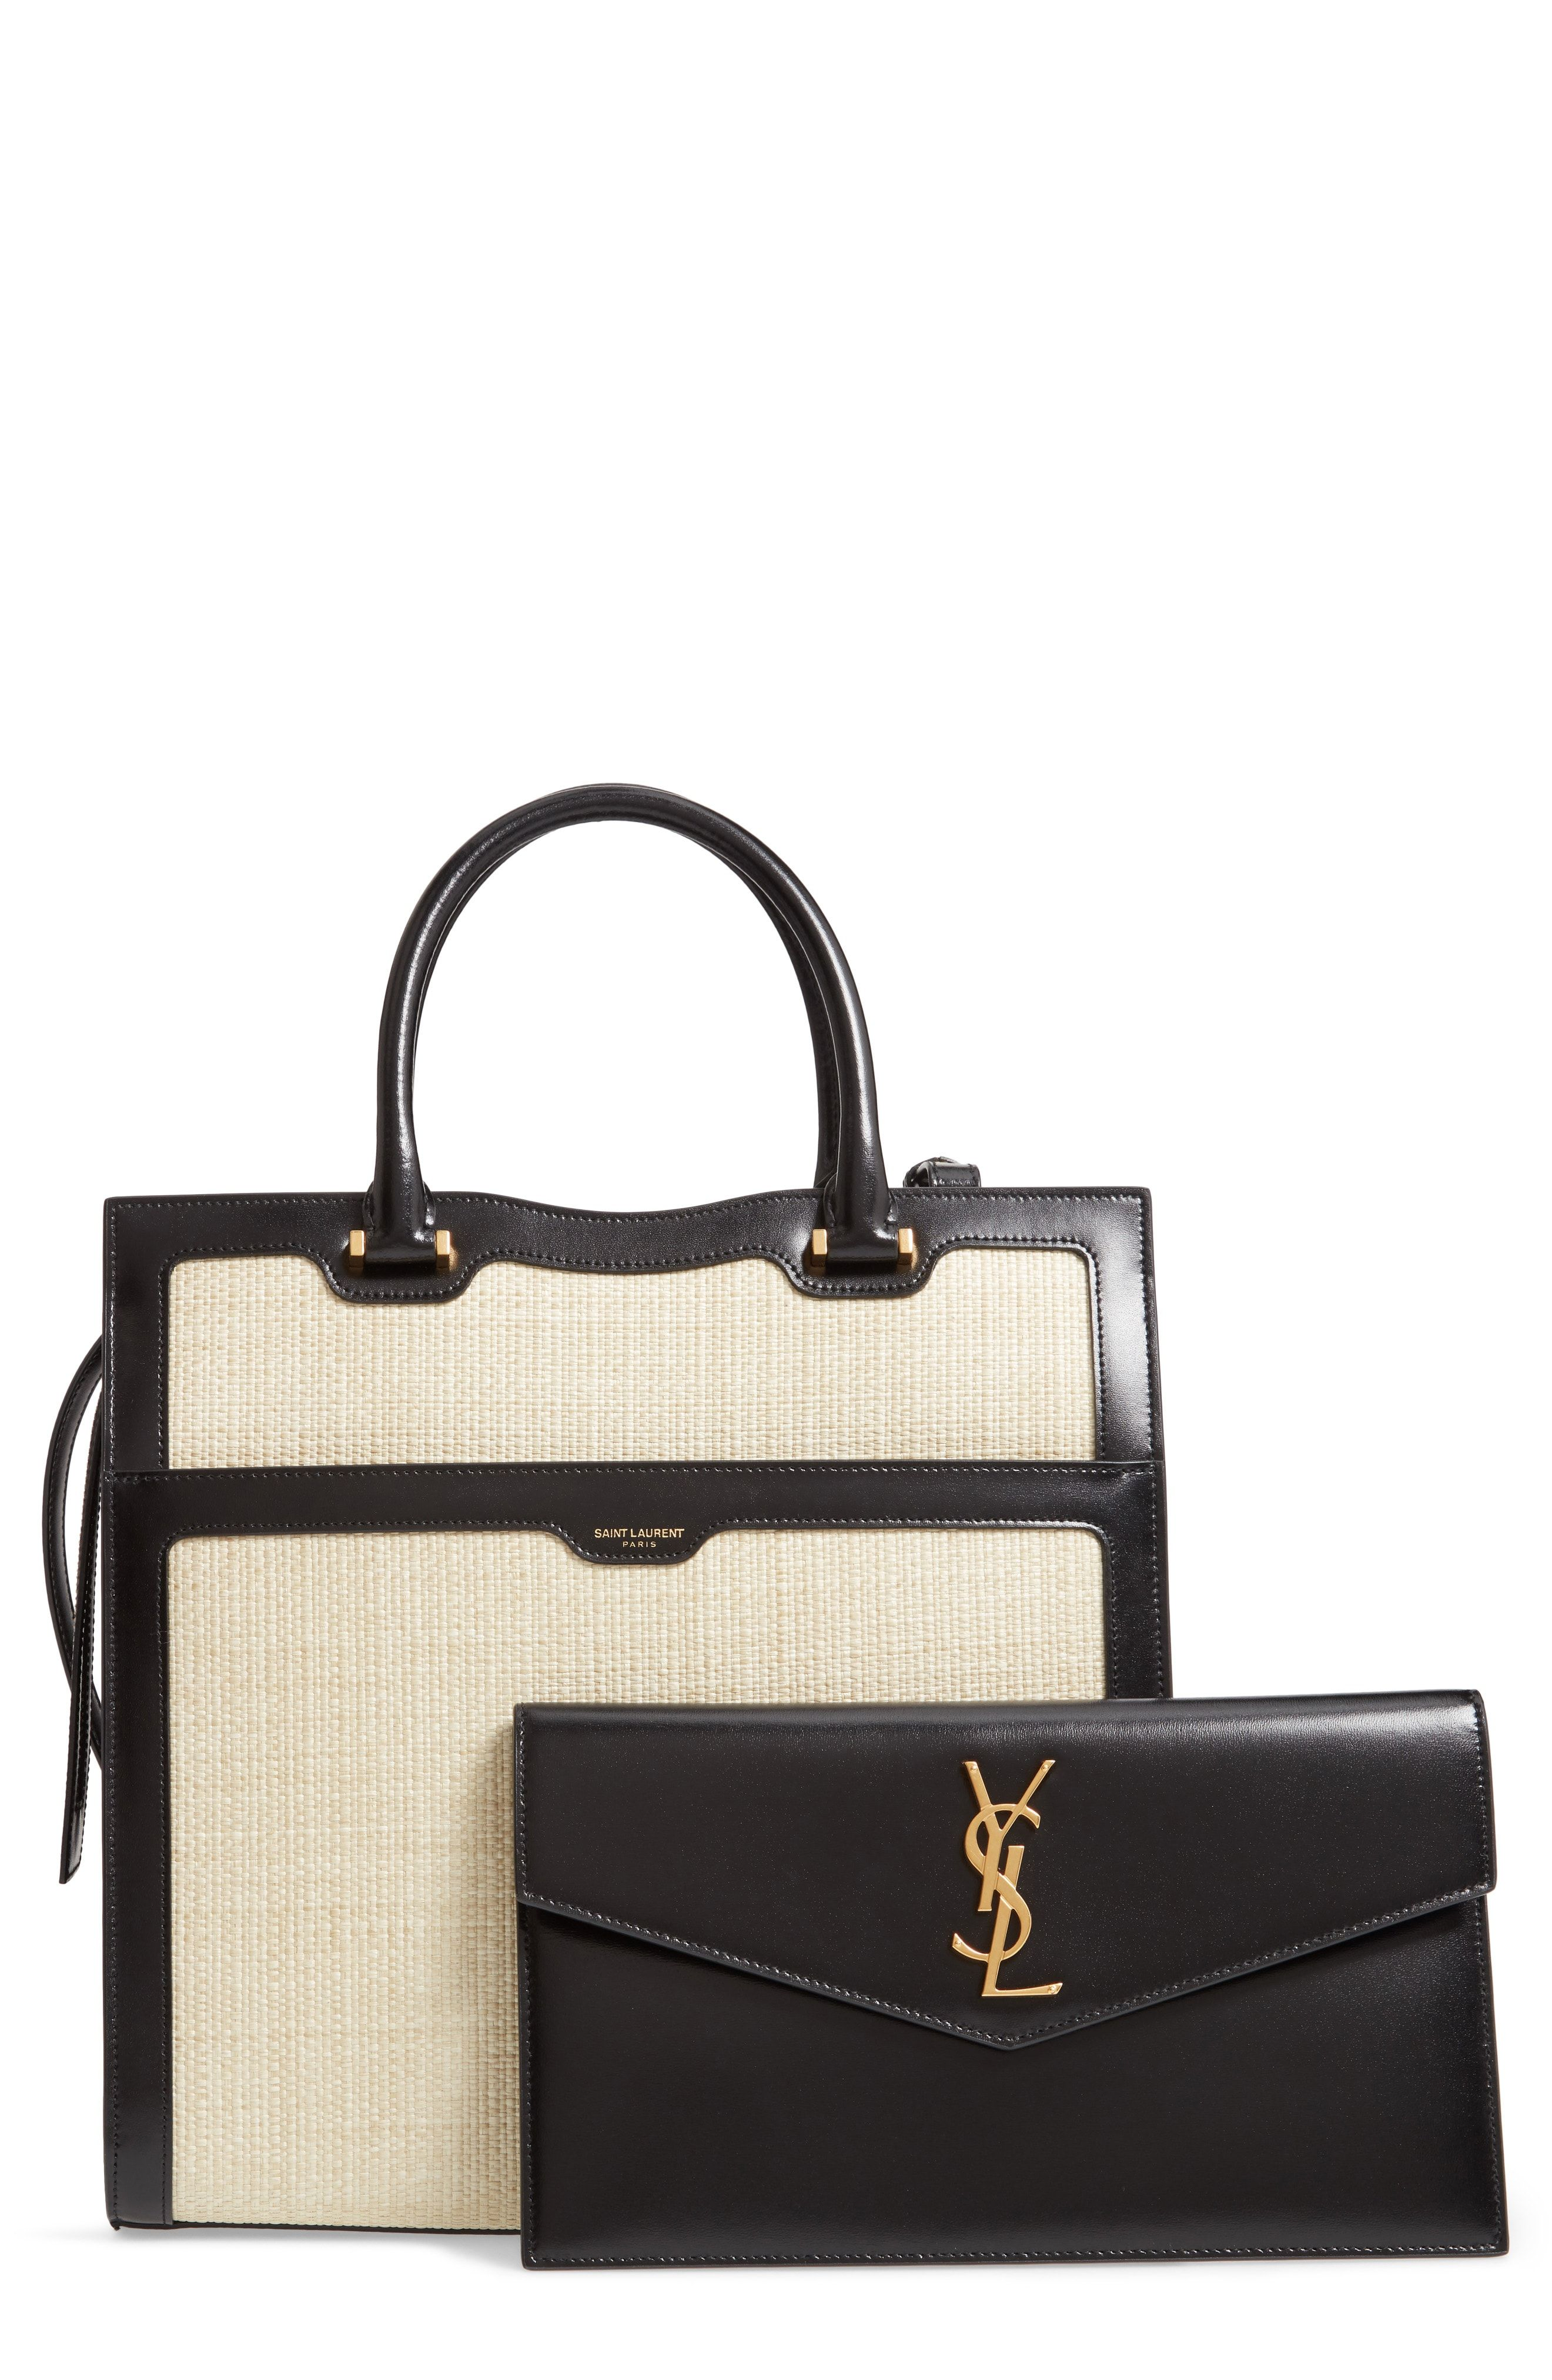 8b049f62e7a Saint Laurent Medium Uptown Cabas Satchel | pretty little things in ...